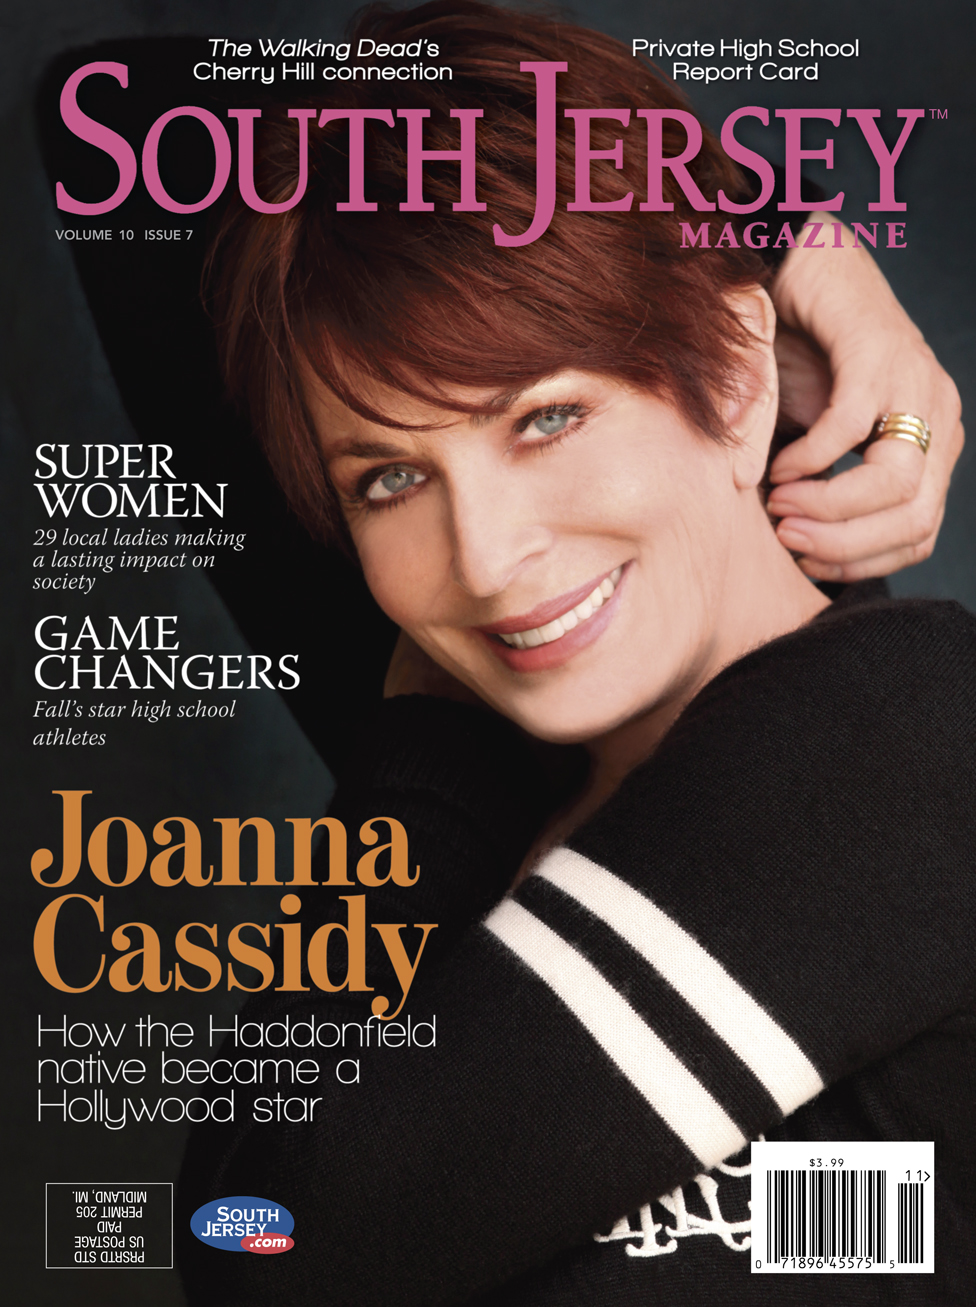 South Jersey Magazine October 2013 Issue